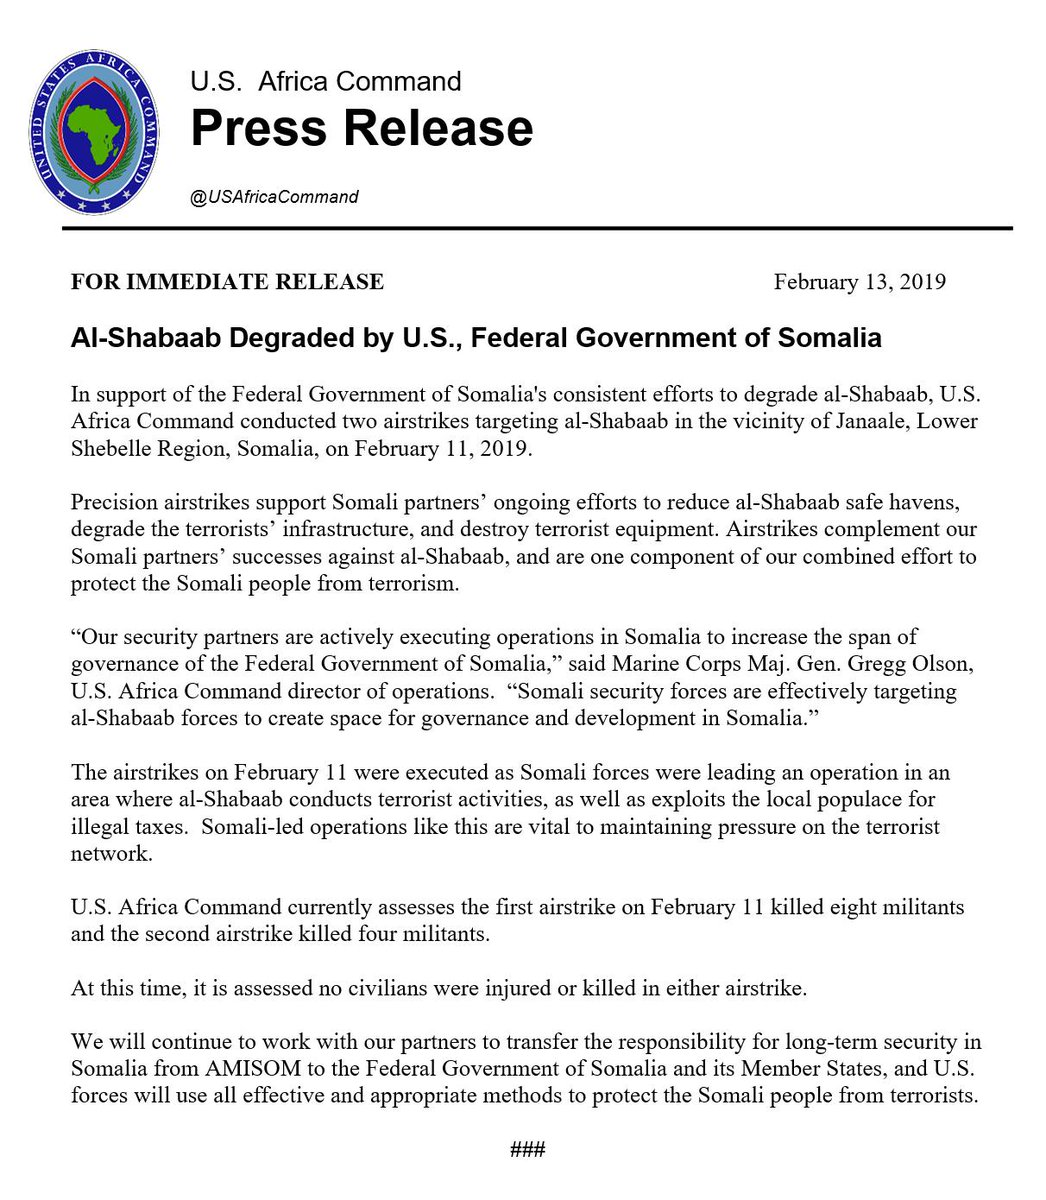 Al-Shabaab Degraded by U.S., Federal Government of Somalia  http://go.usa.gov/xEQQQ